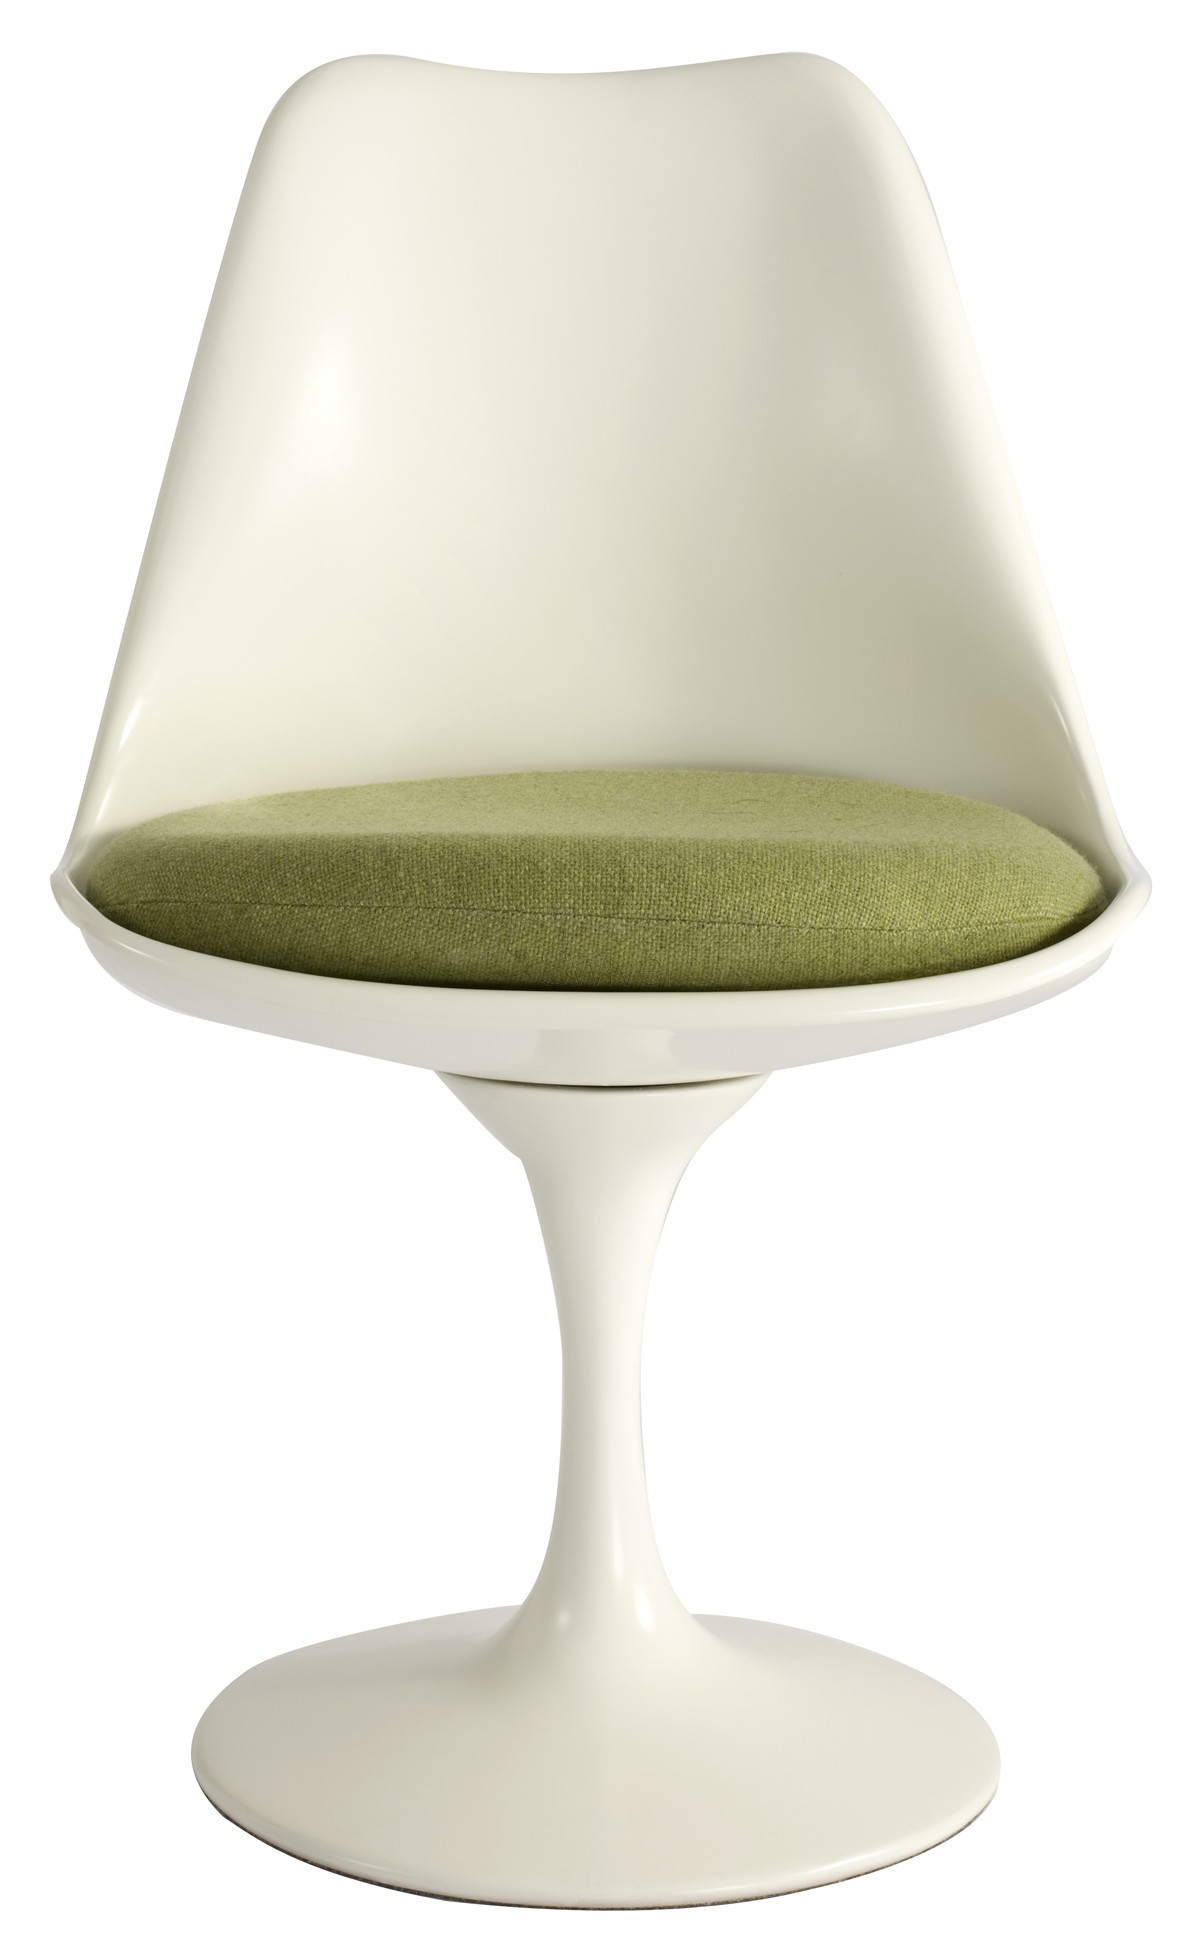 Eero Saarinen Replica Tulip Chair white 2